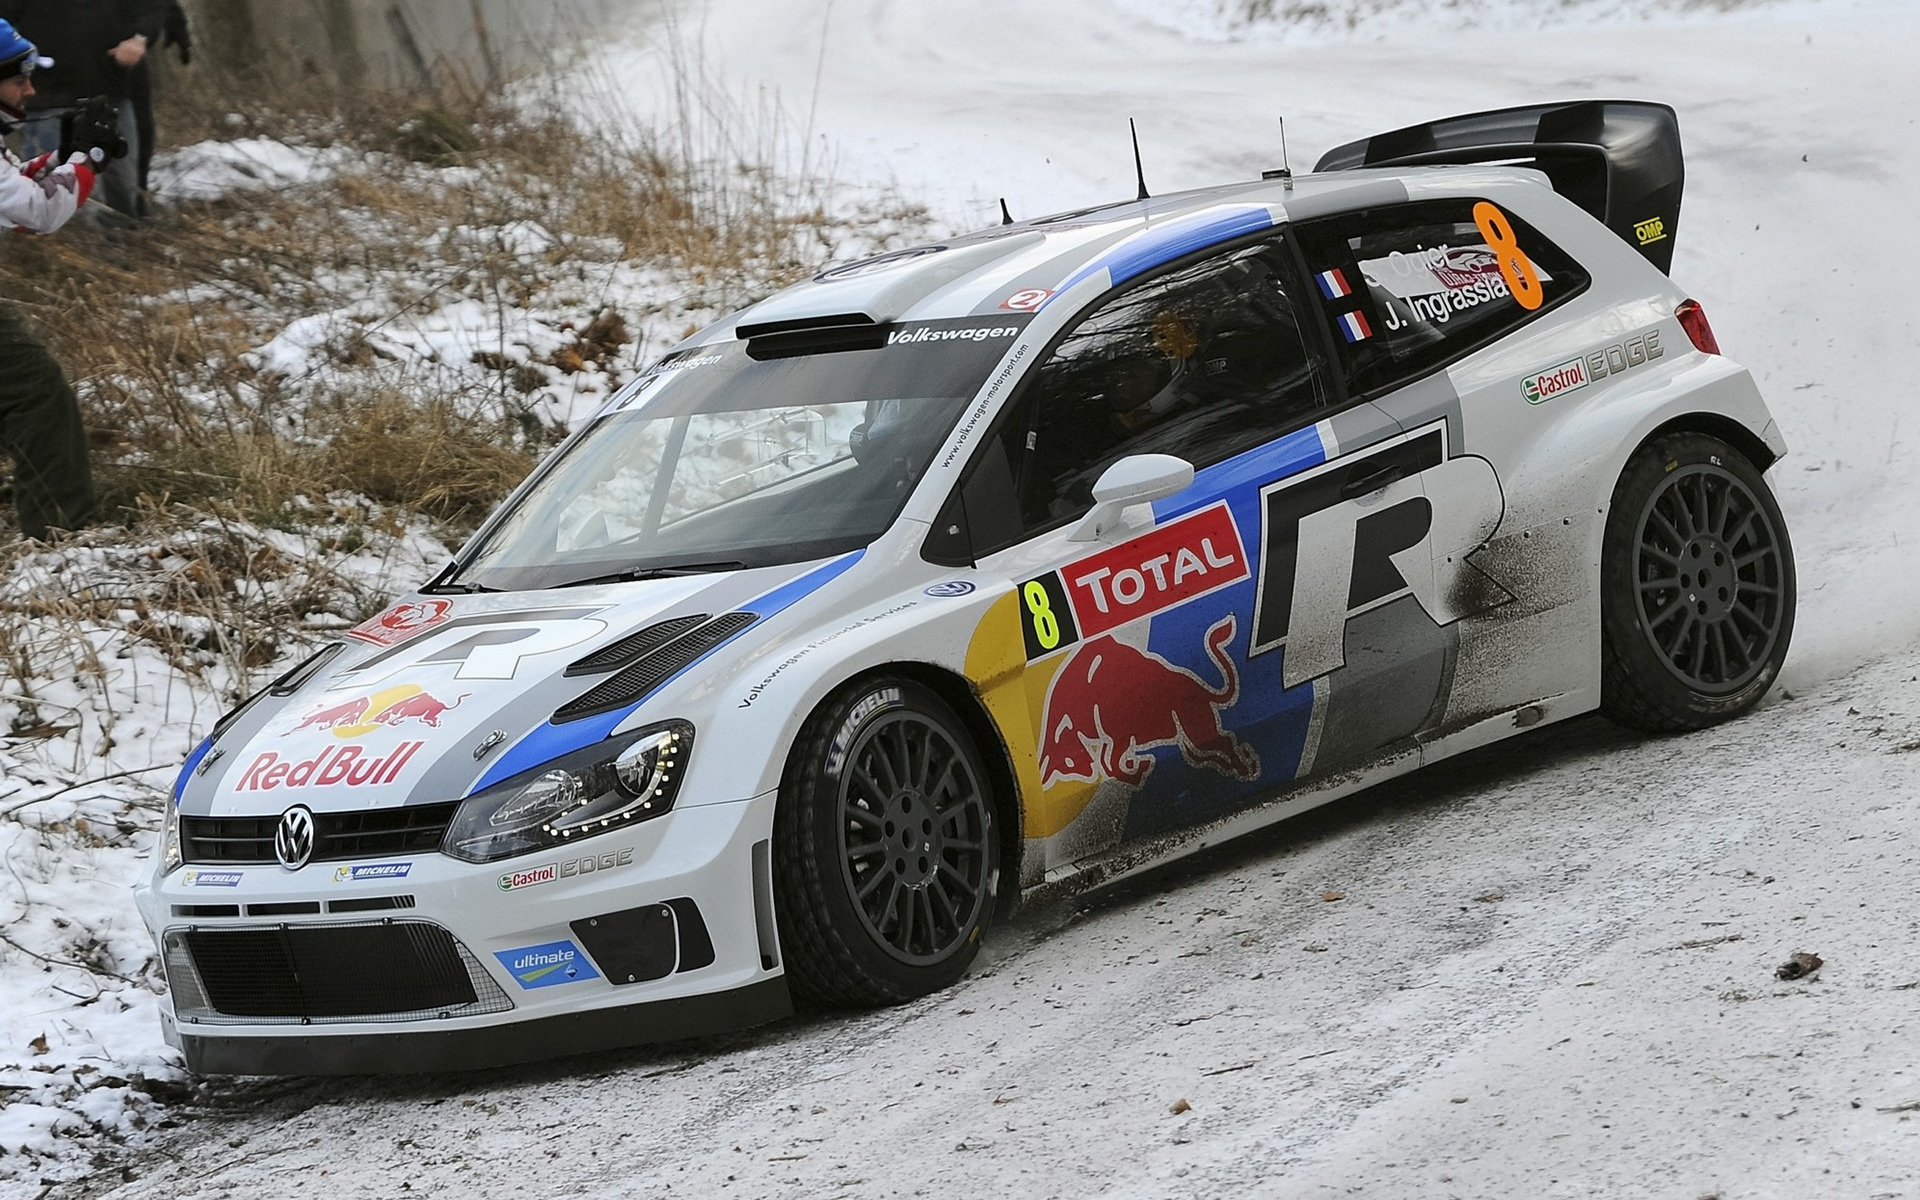 Volkswagen Polo R Wrc 2013 Wallpapers And Hd Images